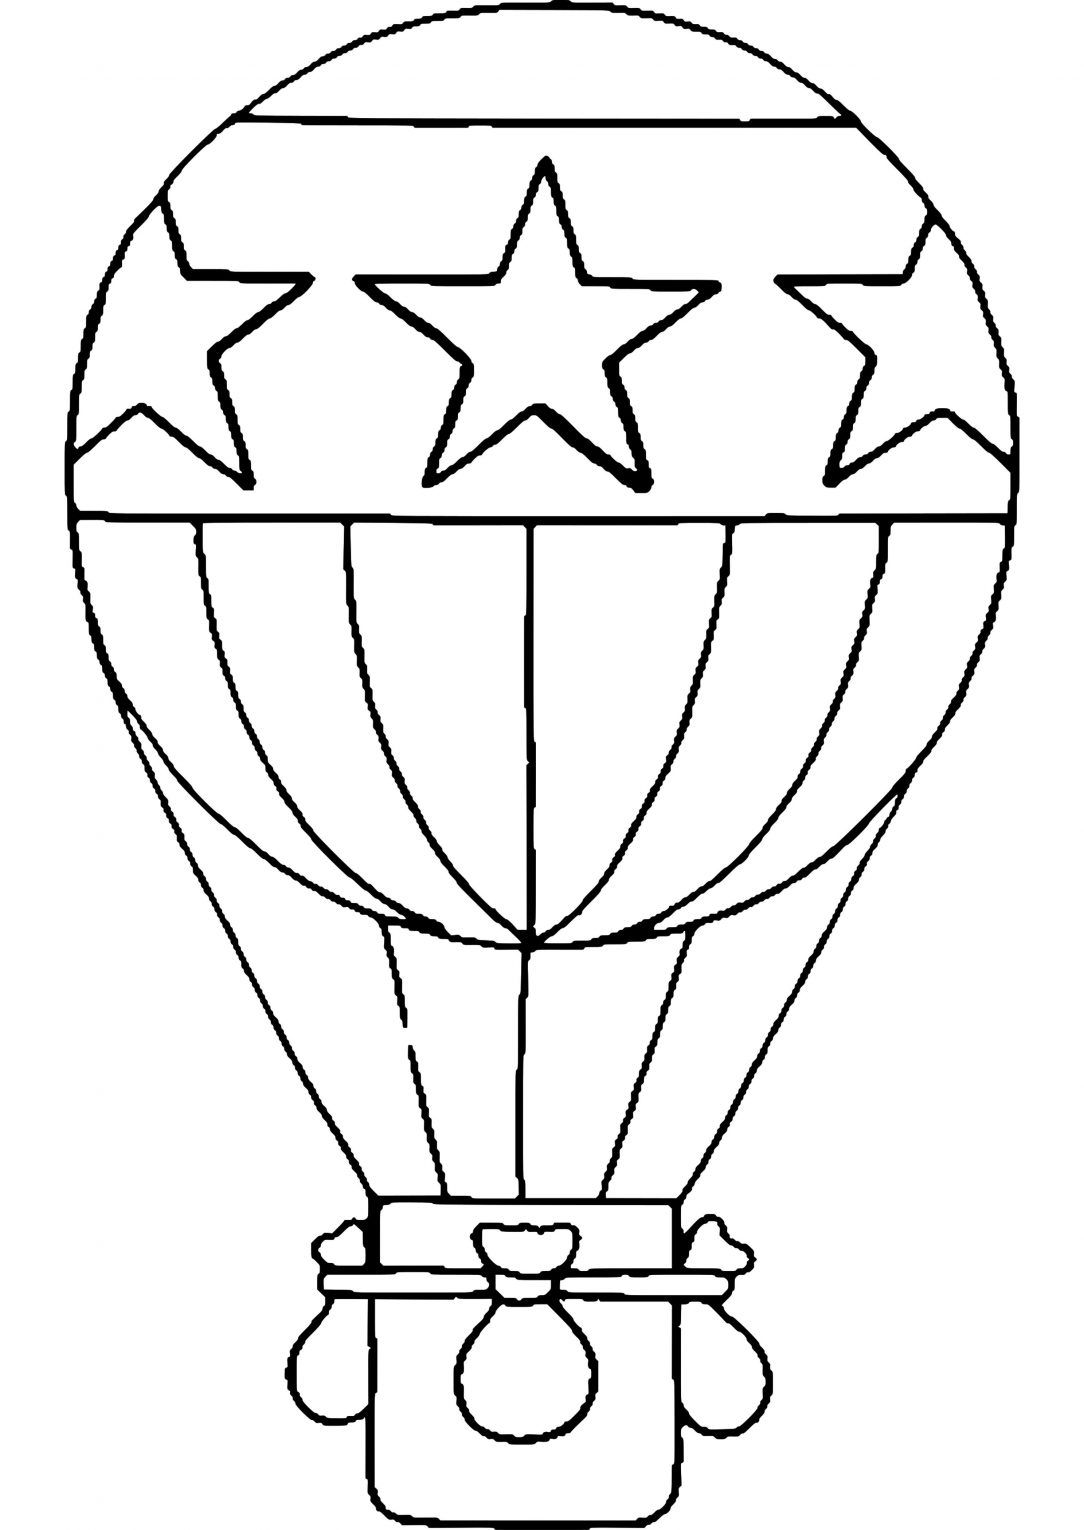 Colouring Pages Of Air Transport Coloring Pages Hot Air Balloon Color Pages Of Fnaf Colouring To Print Ardeseng Hot Air Balloon Drawing Coloring Pages Balloons